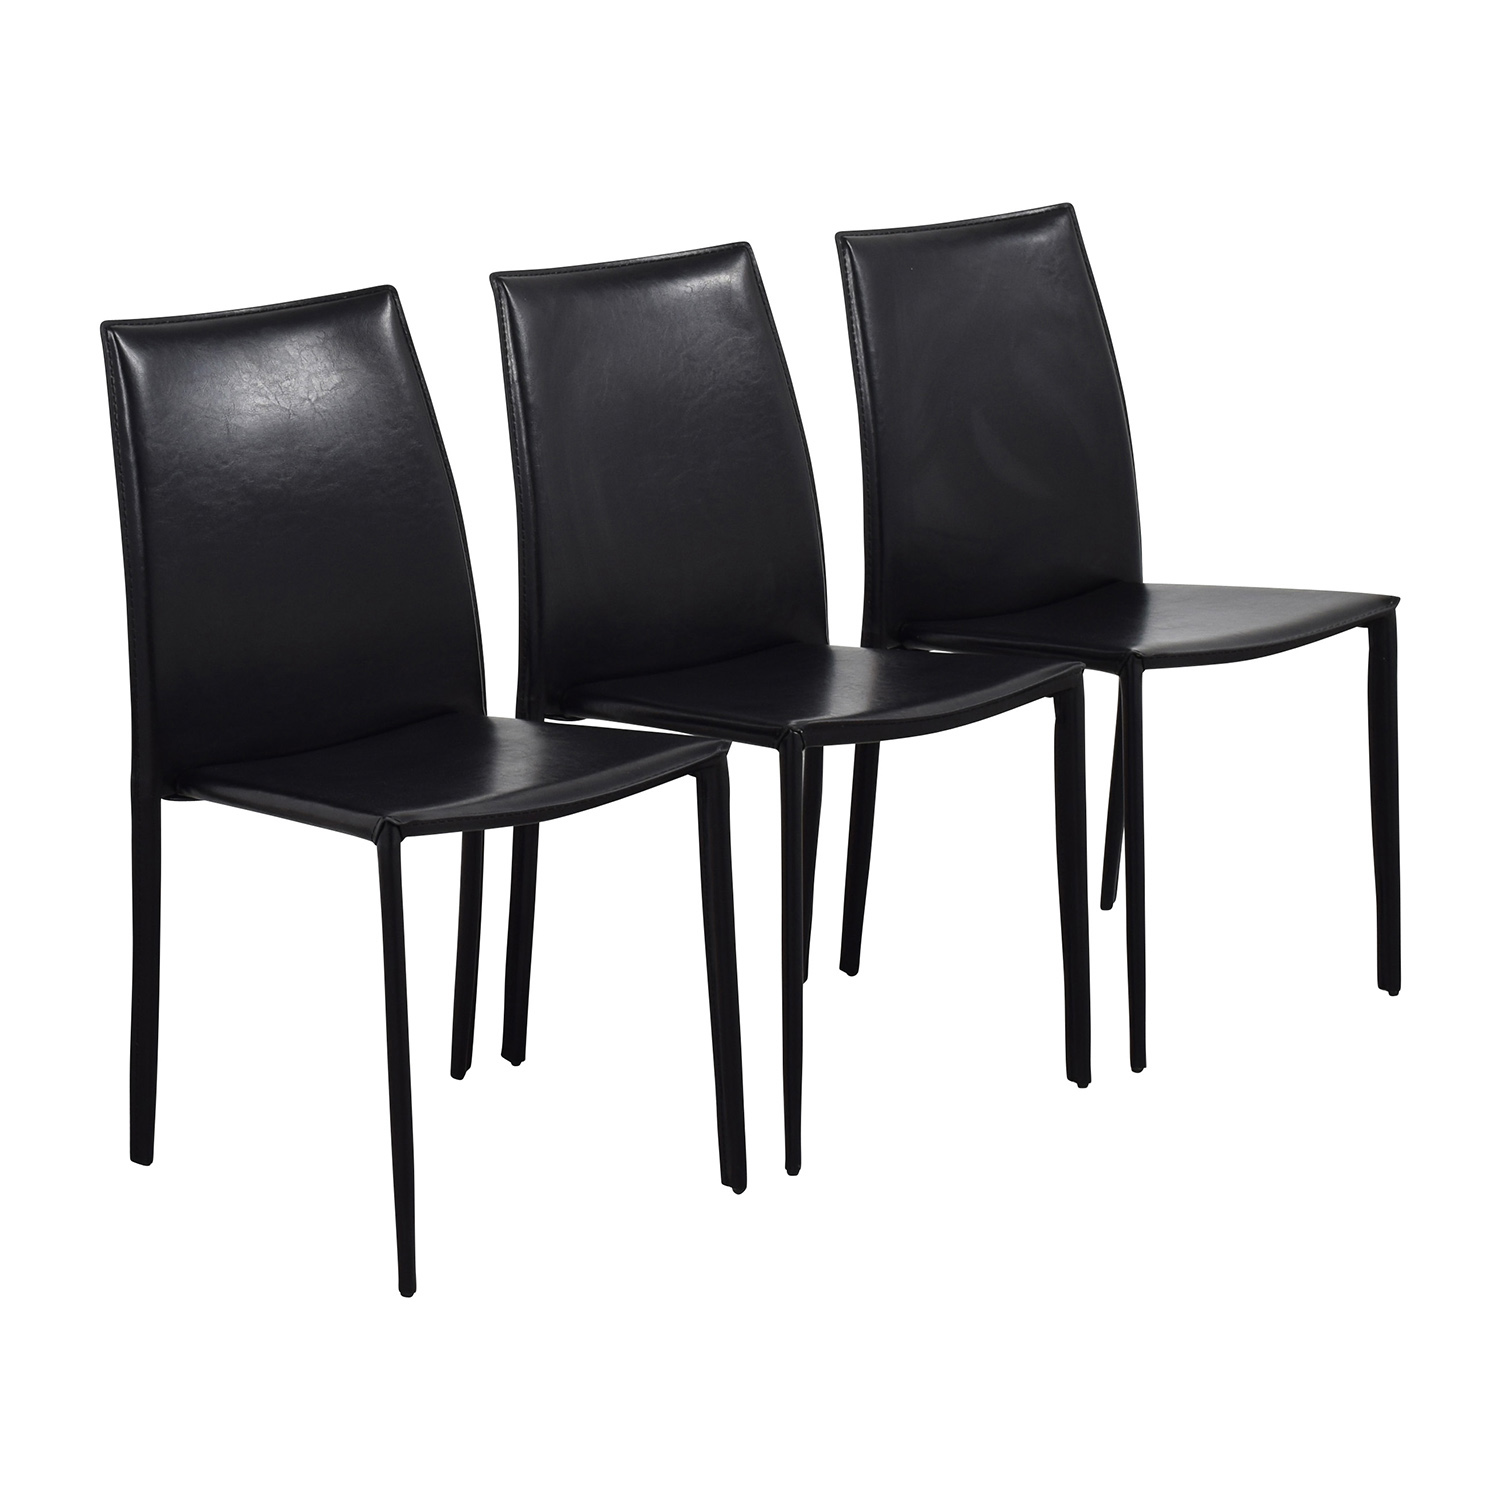 87 off inmod inmod manta black leather stacking chairs for In mod furniture